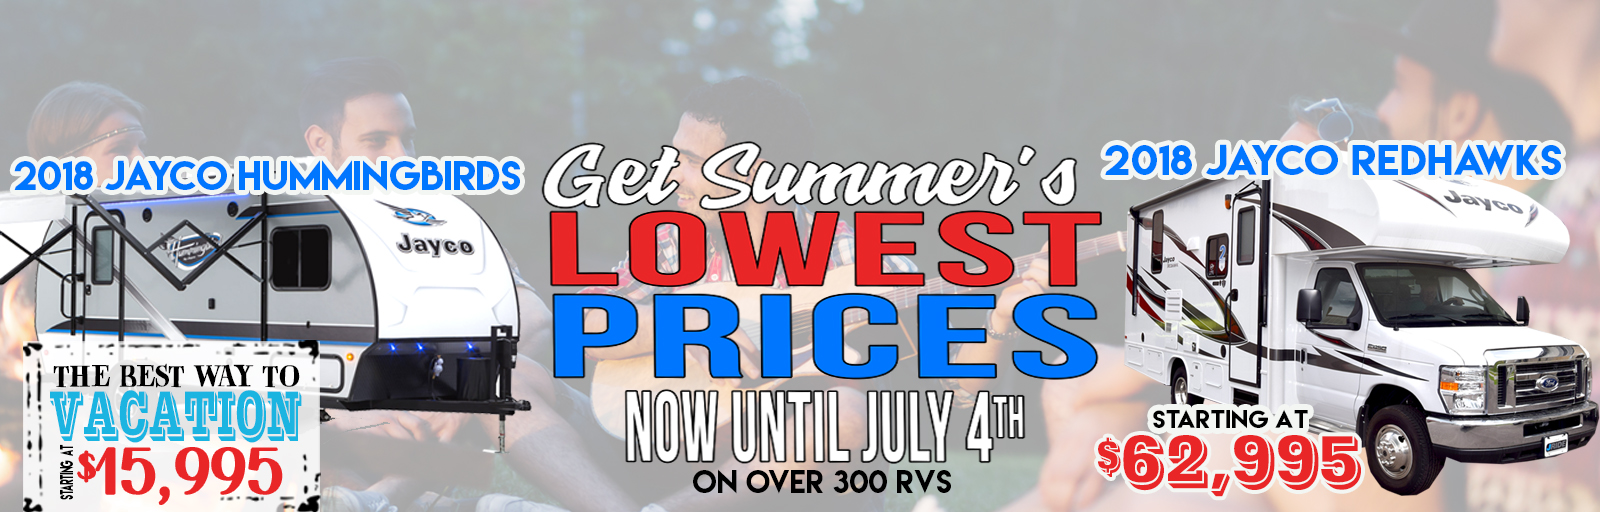 Summer's Lowest Prices